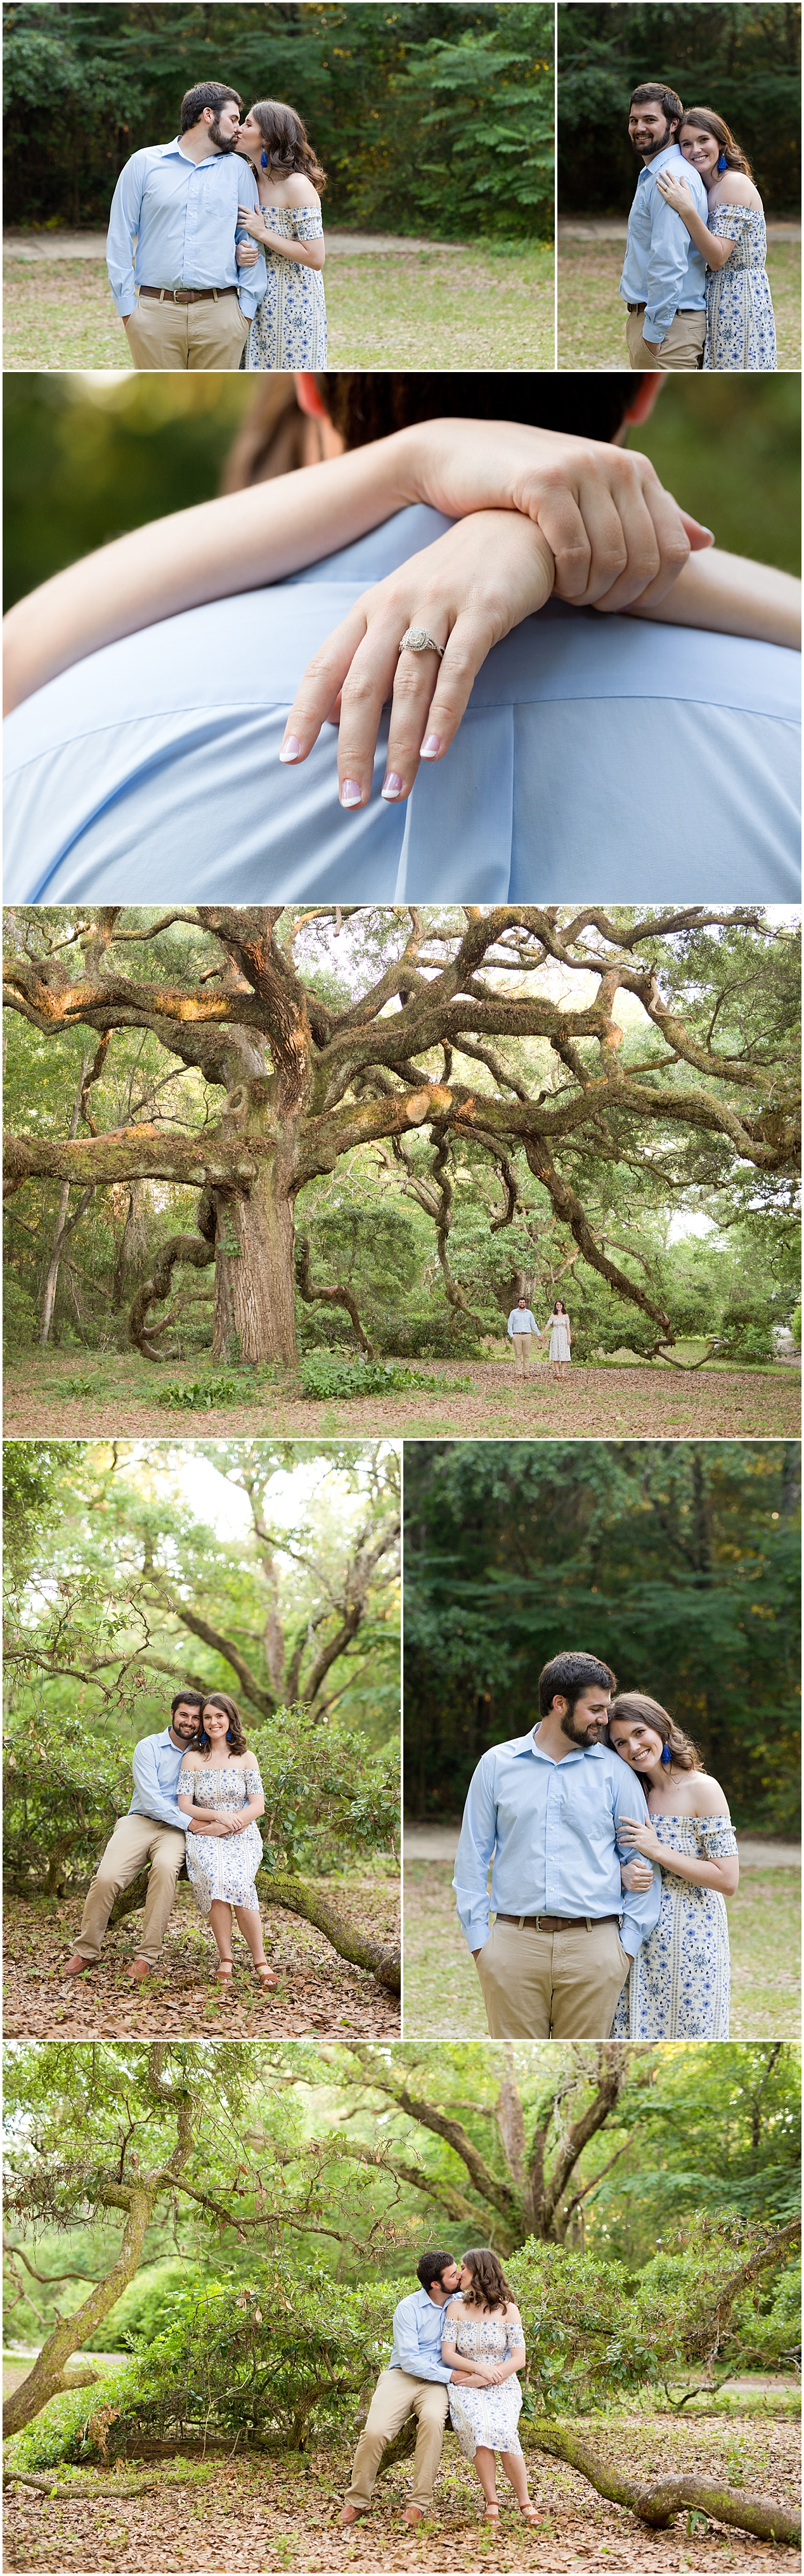 Ocean Springs wedding photographer - engagement photos with live oak trees